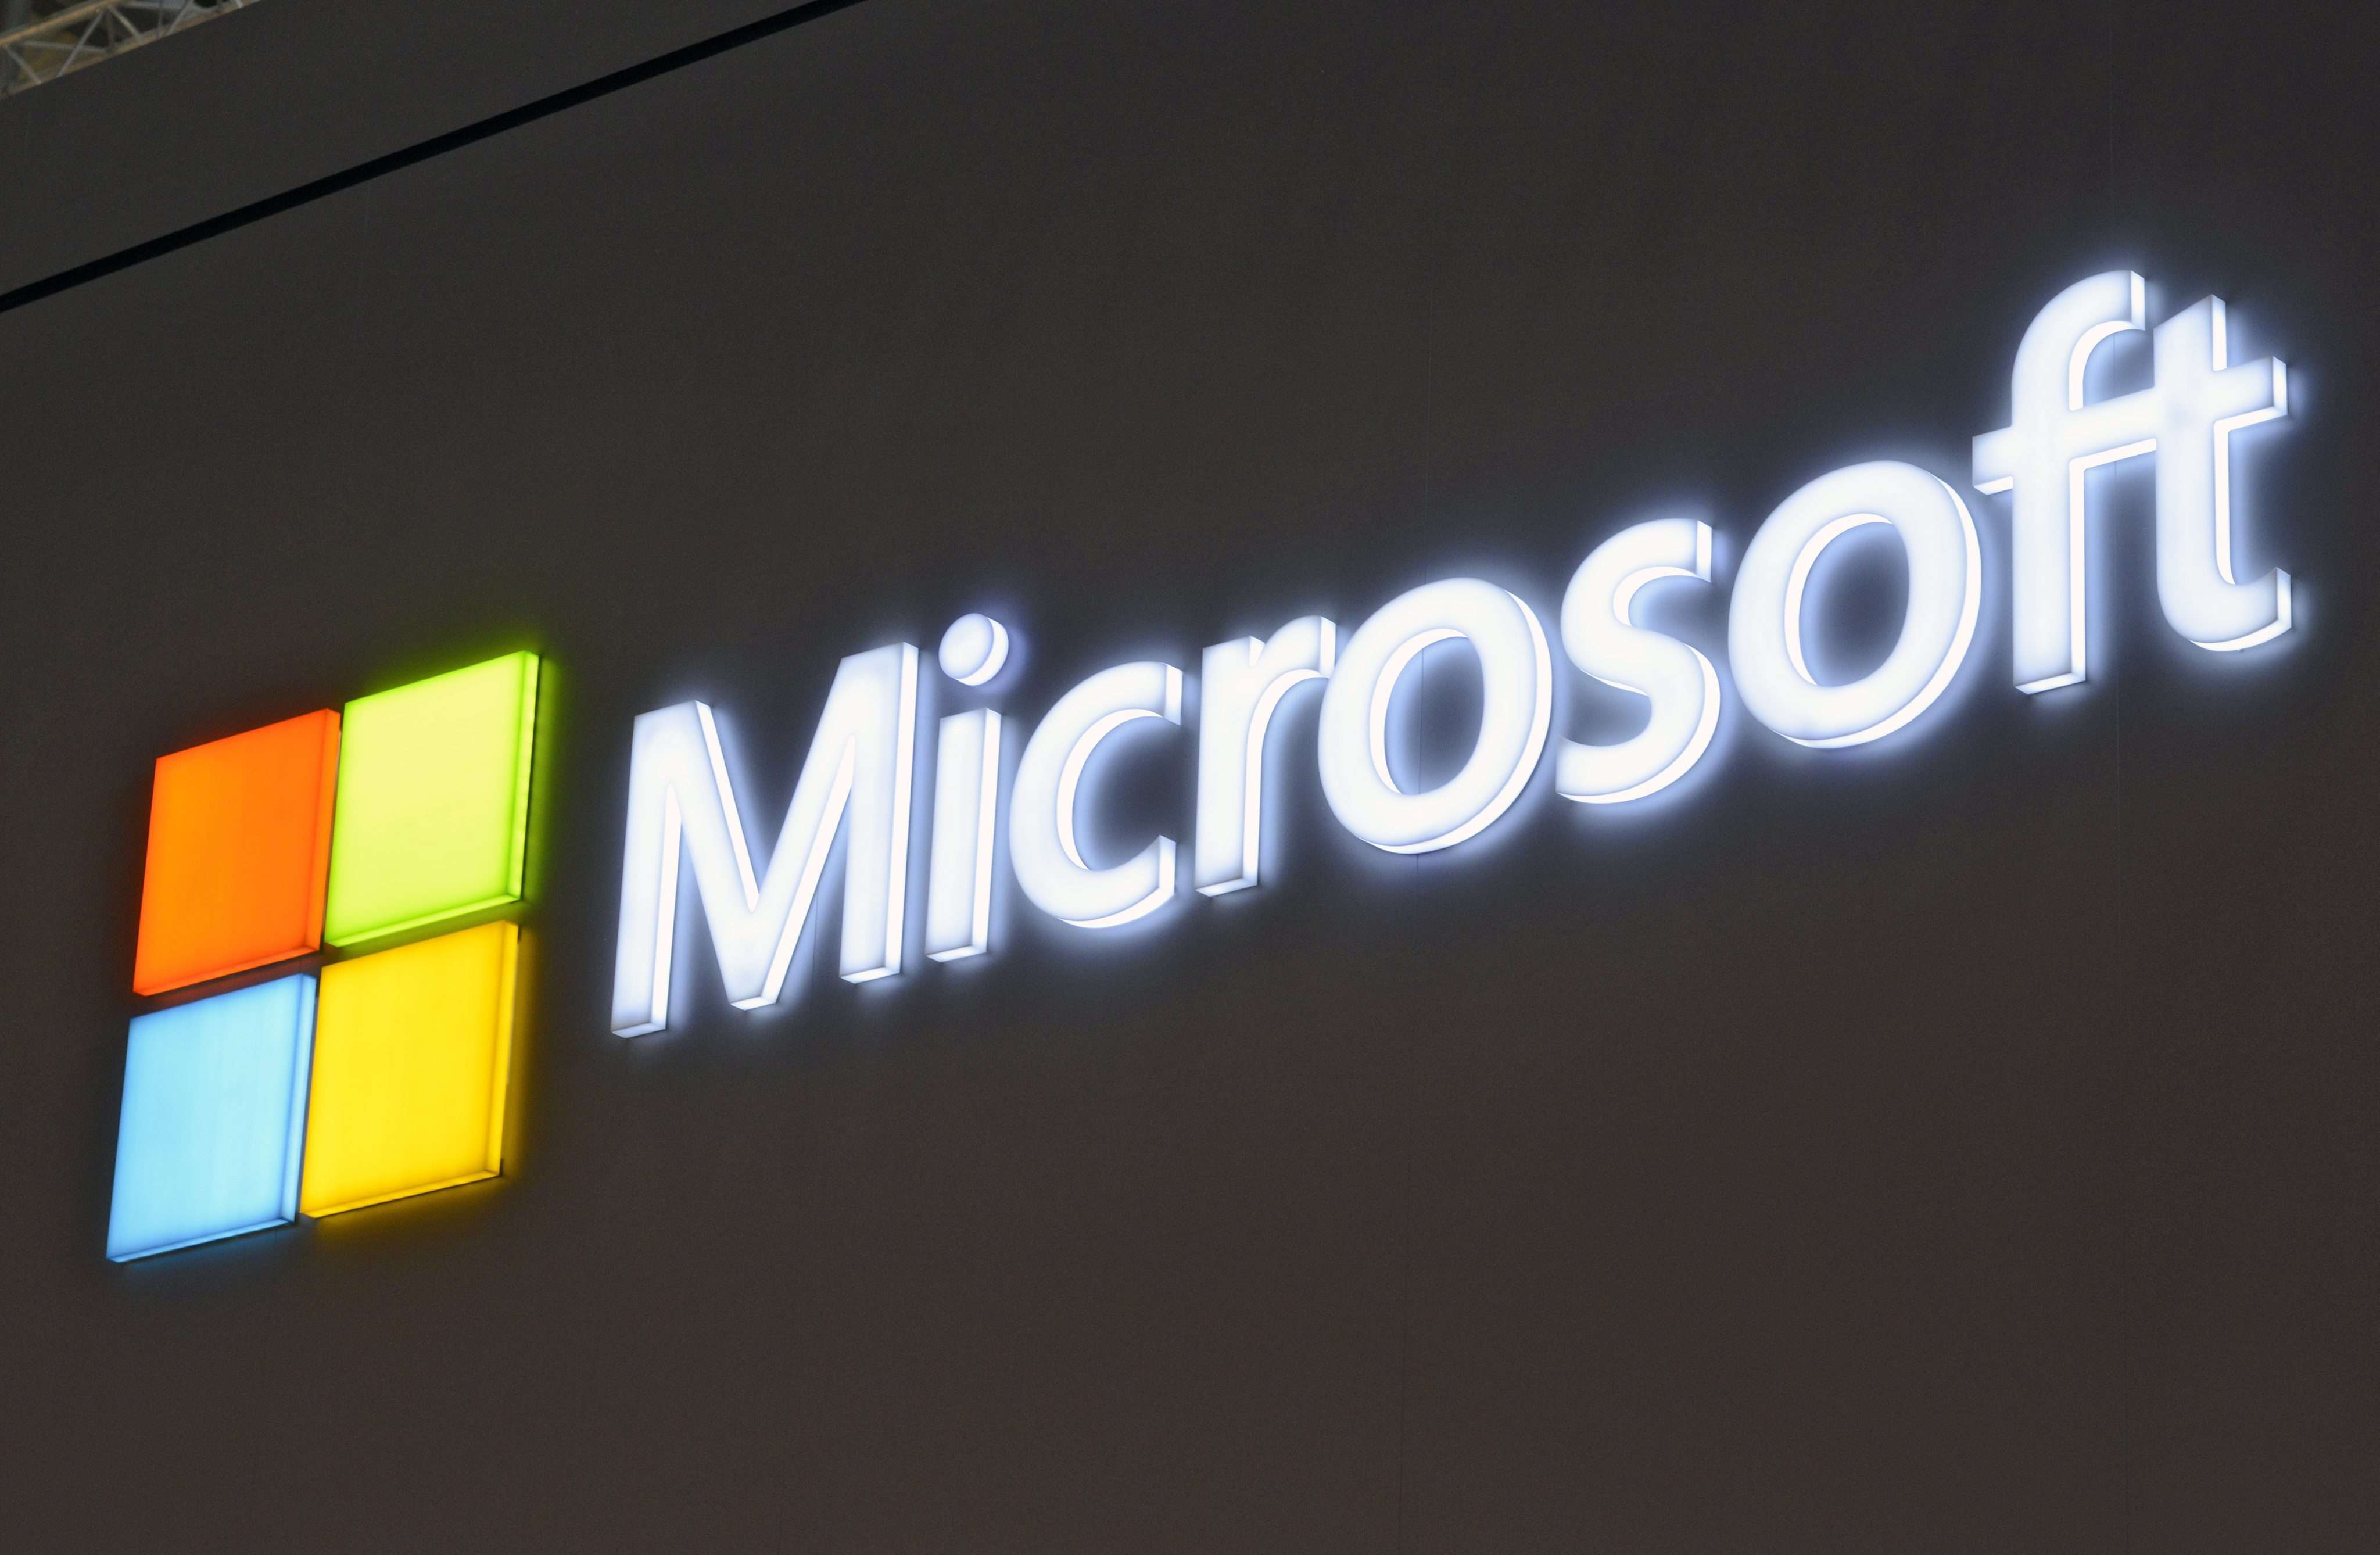 epa04855933 (FILE) A file image dated 05 March 2013 showing the Microsoft logo at Microsoft stand at the CeBit trade fair, Hanover, Germany. Microsoft announced on 21 July 2015 a revenue loss of 2.1 billion dollars bringing its revenue to 22.2 billion dollars for the fourth quarter. EPA/MAURITZ ANTIN